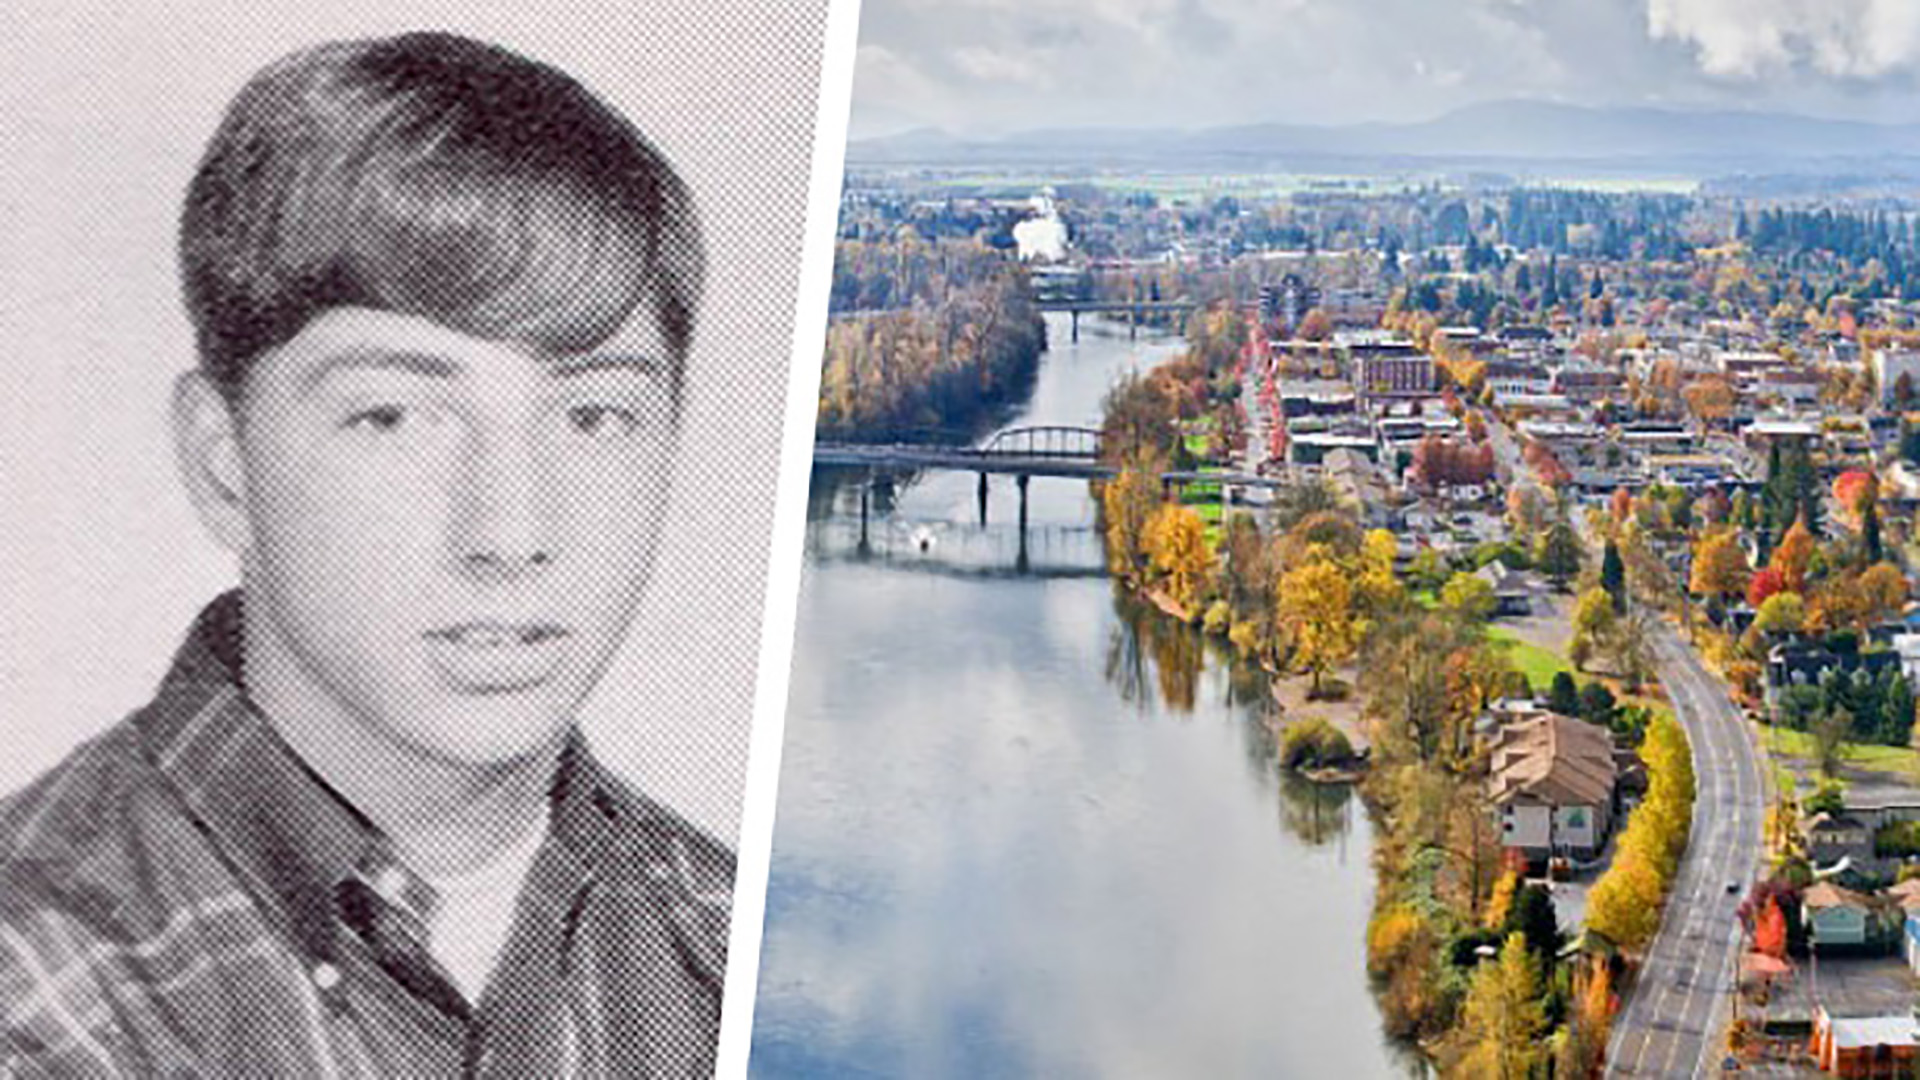 Dick Kitchel: Exploring the Mysterious 1960s Unsolved Murder of an Oregon Teenager